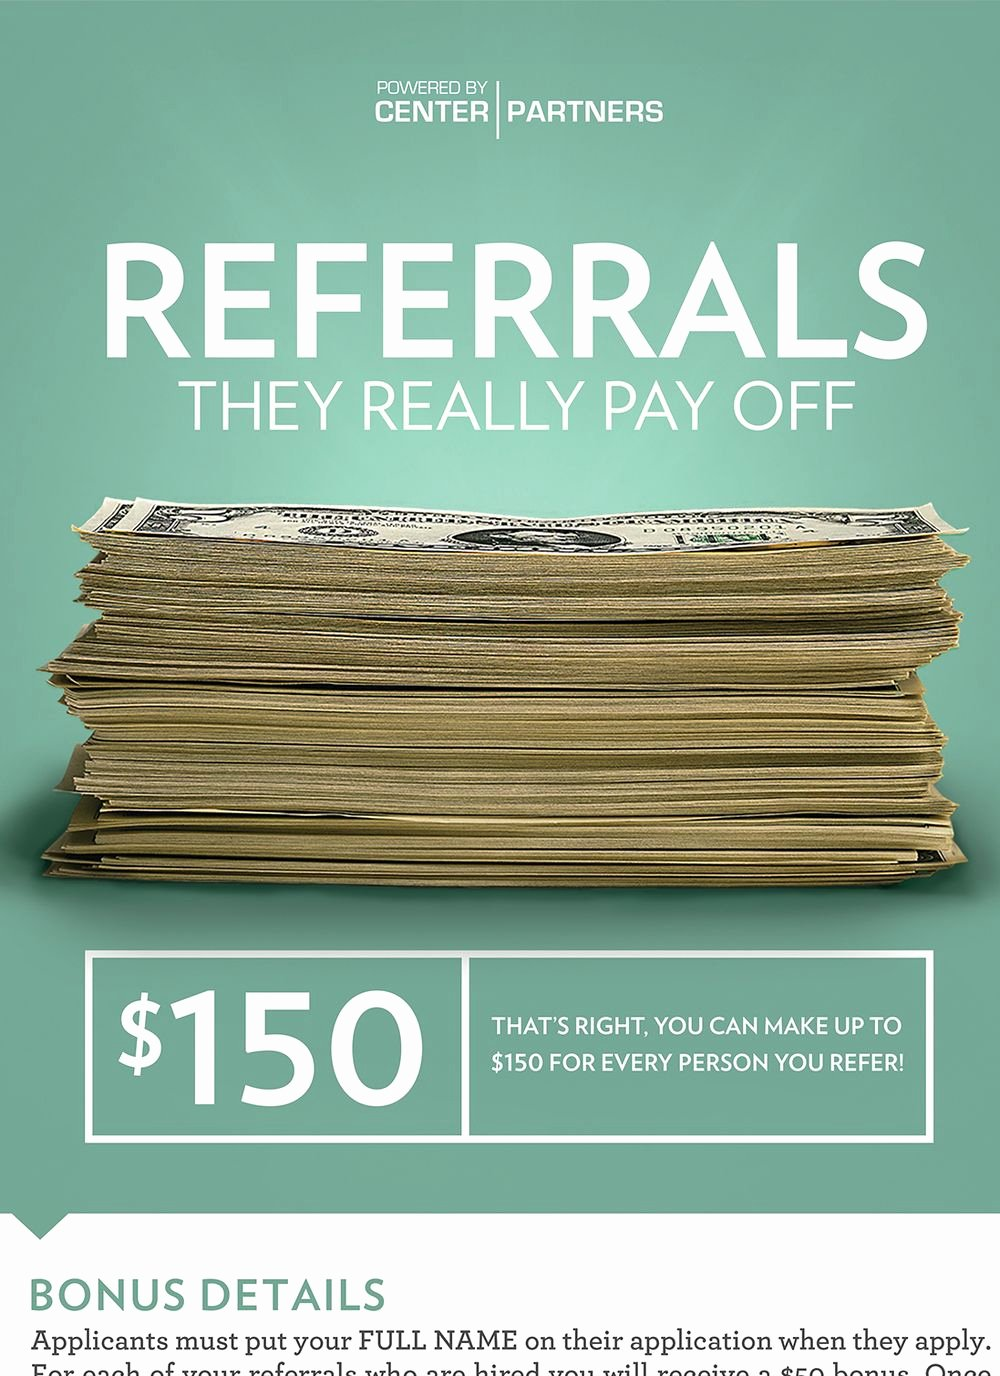 Employee Referral Program Template Elegant Center Partners — Employee Referral Program Poster Close